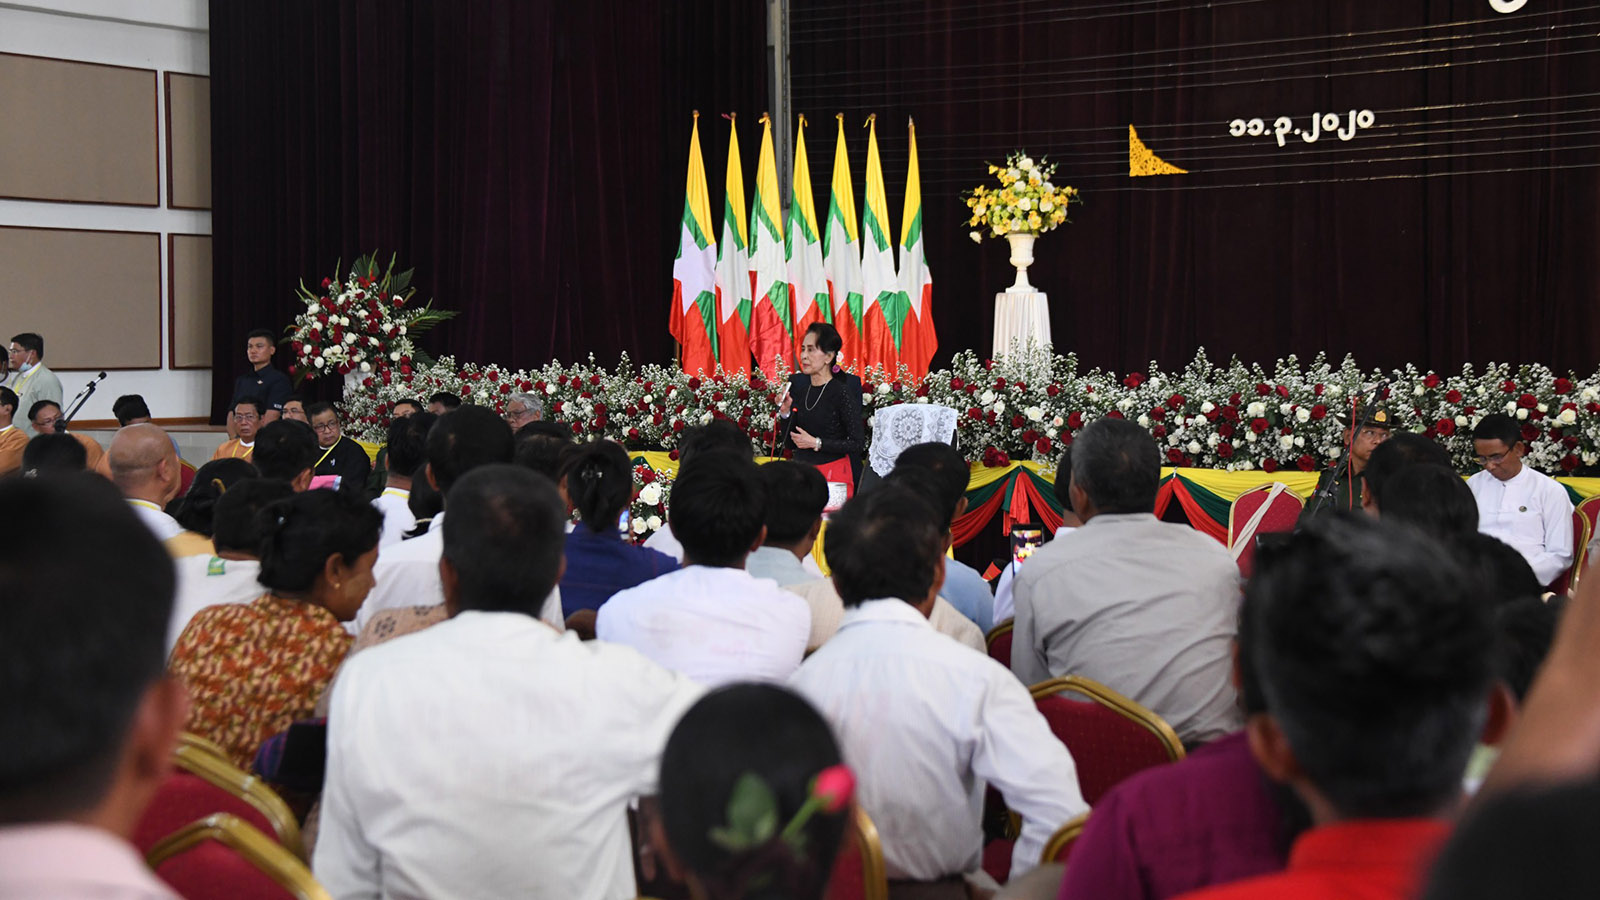 State Counsellor Daw Aung San Suu Kyi speaks at the meeting with local people in Shwebo.Photo: MNA